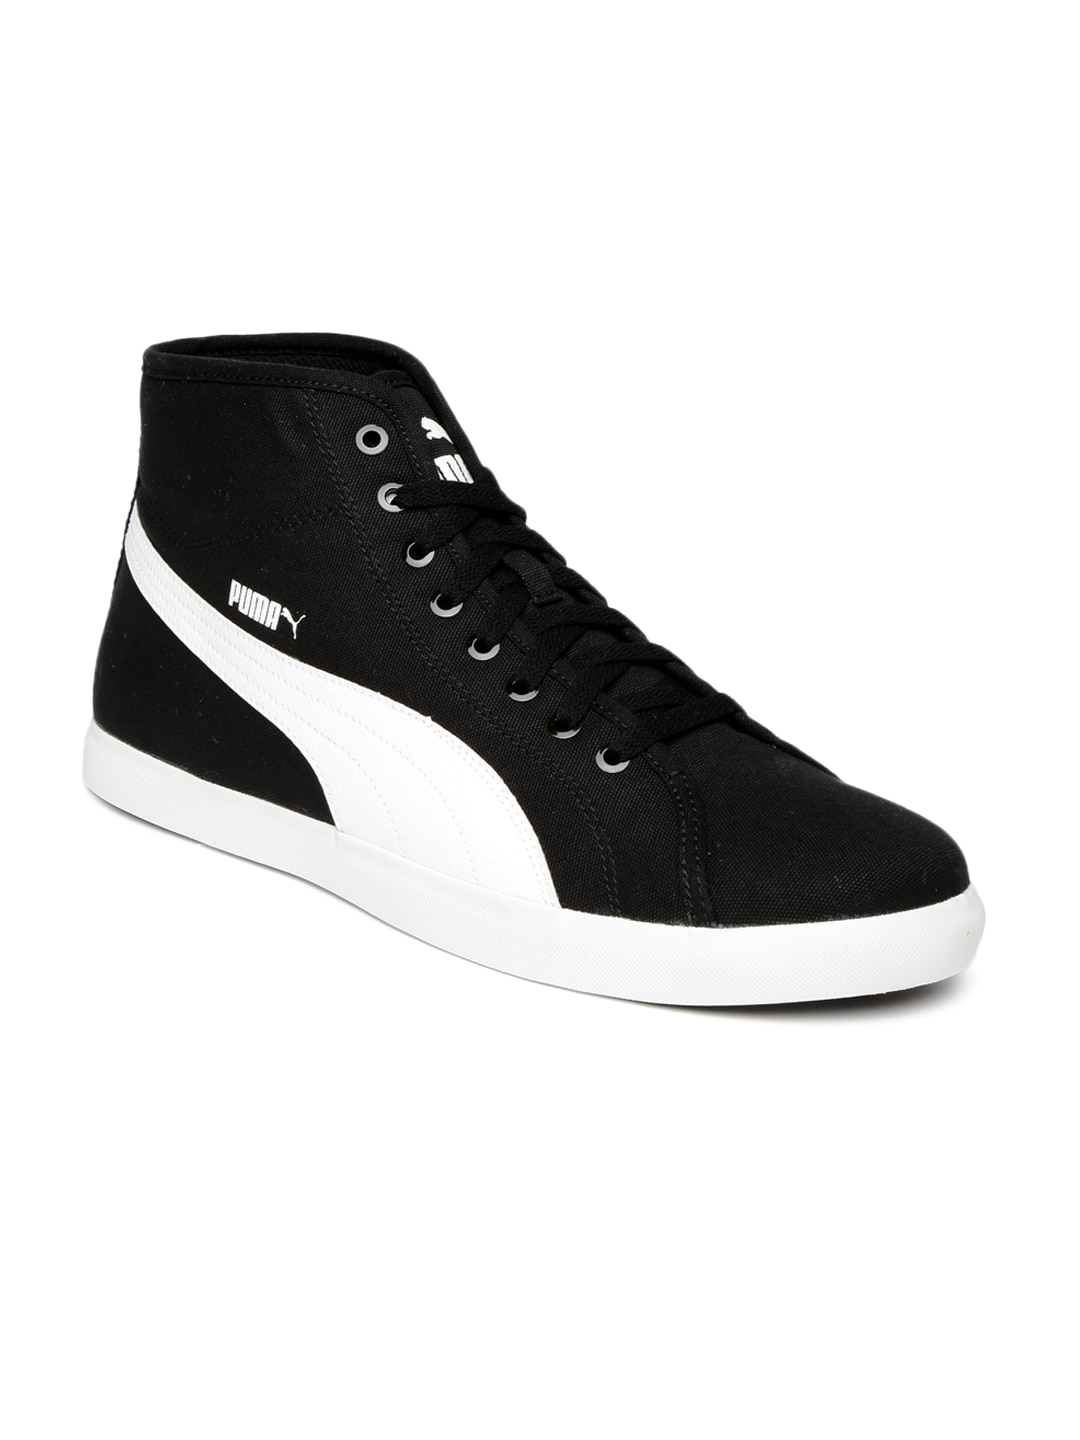 a337b2821293 Sneaker Footwear Men Puma - Buy Sneaker Footwear Men Puma online in India